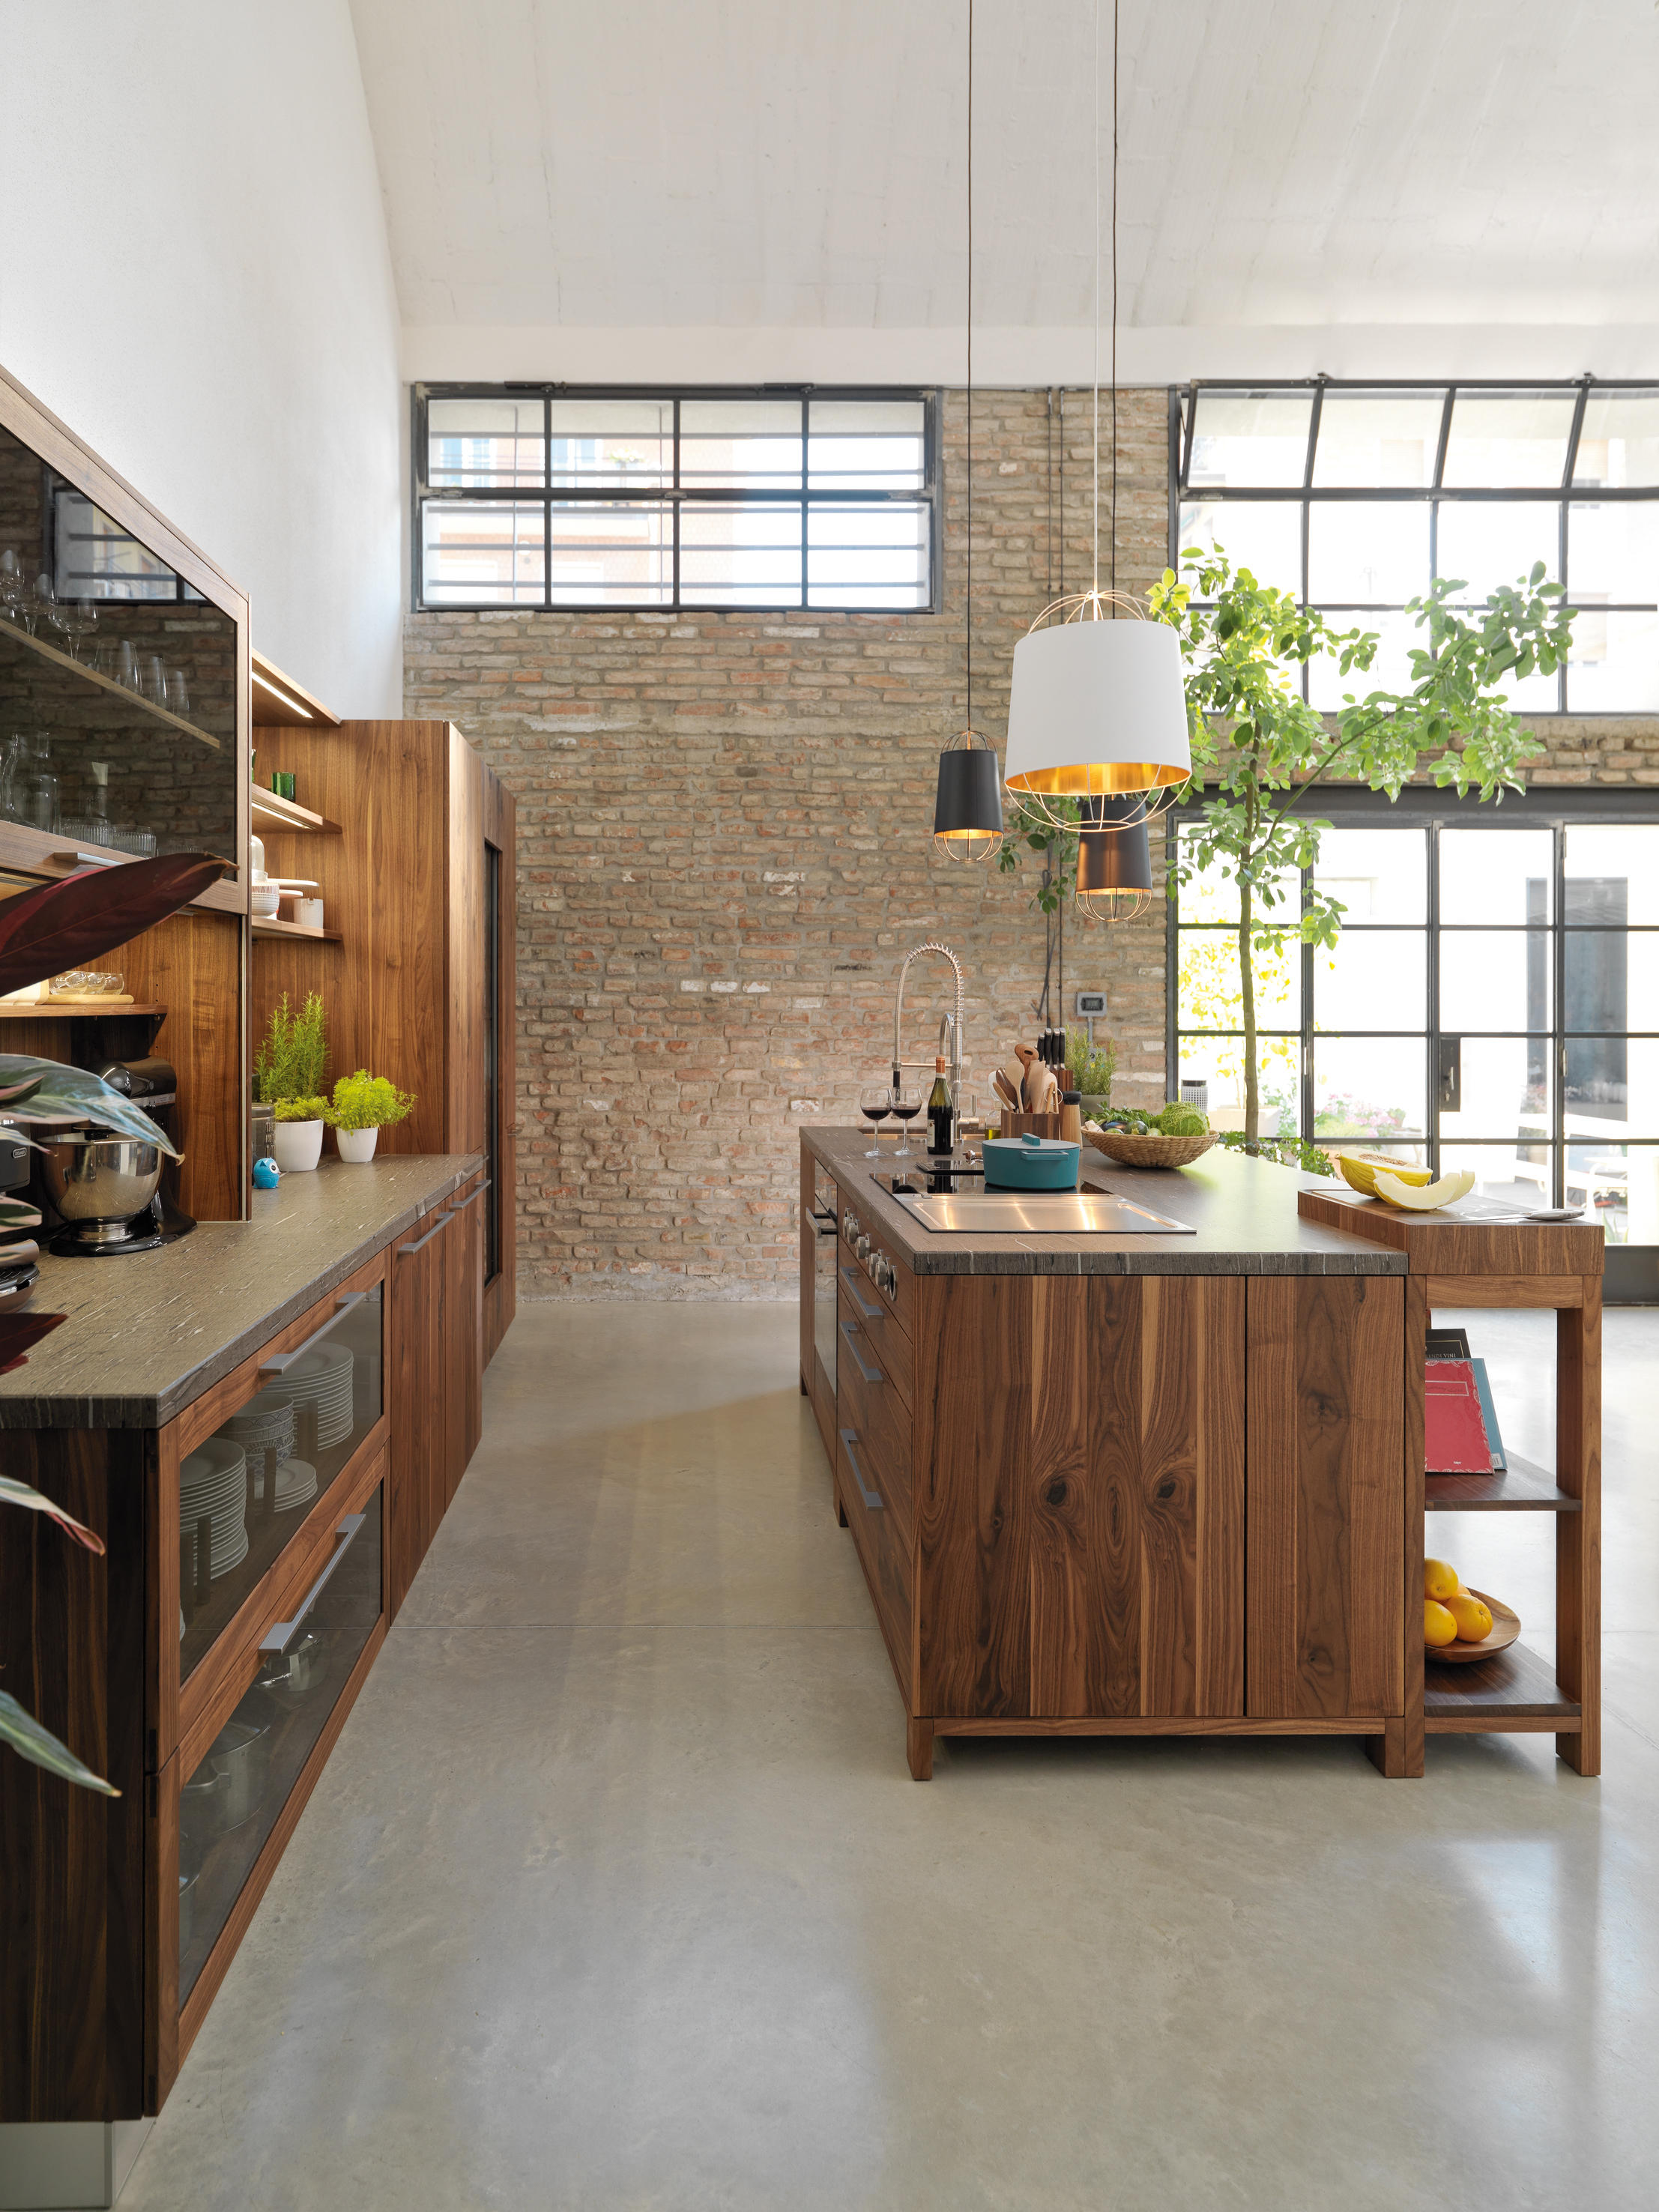 Loft Kitchen By TEAM 7 Loft Kitchen By TEAM 7 ...